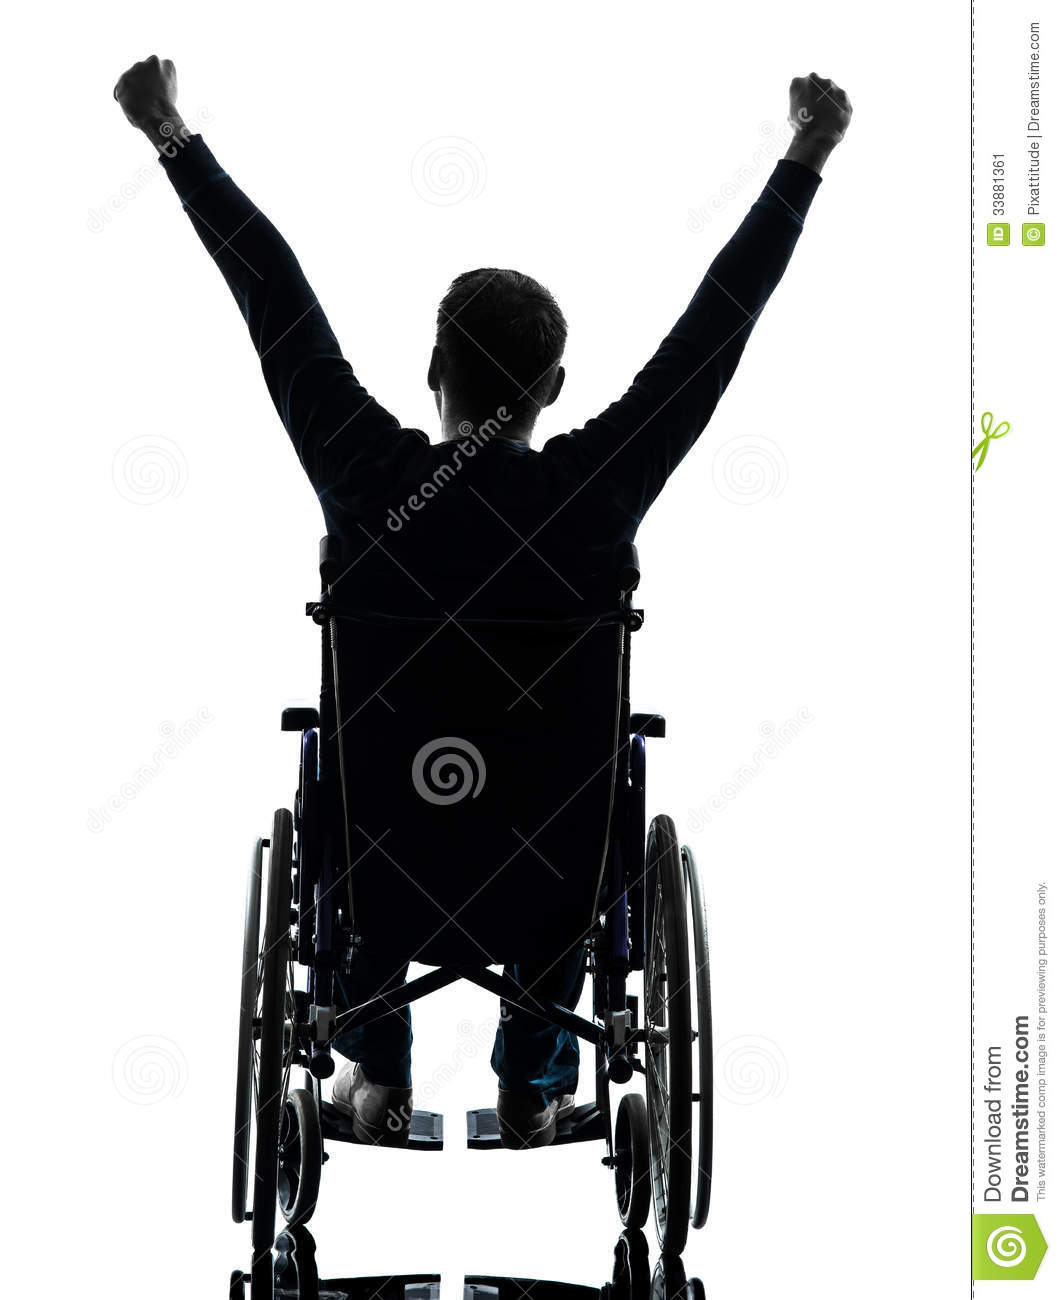 Rear View Handicapped Man Arms Raised In Wheelchair